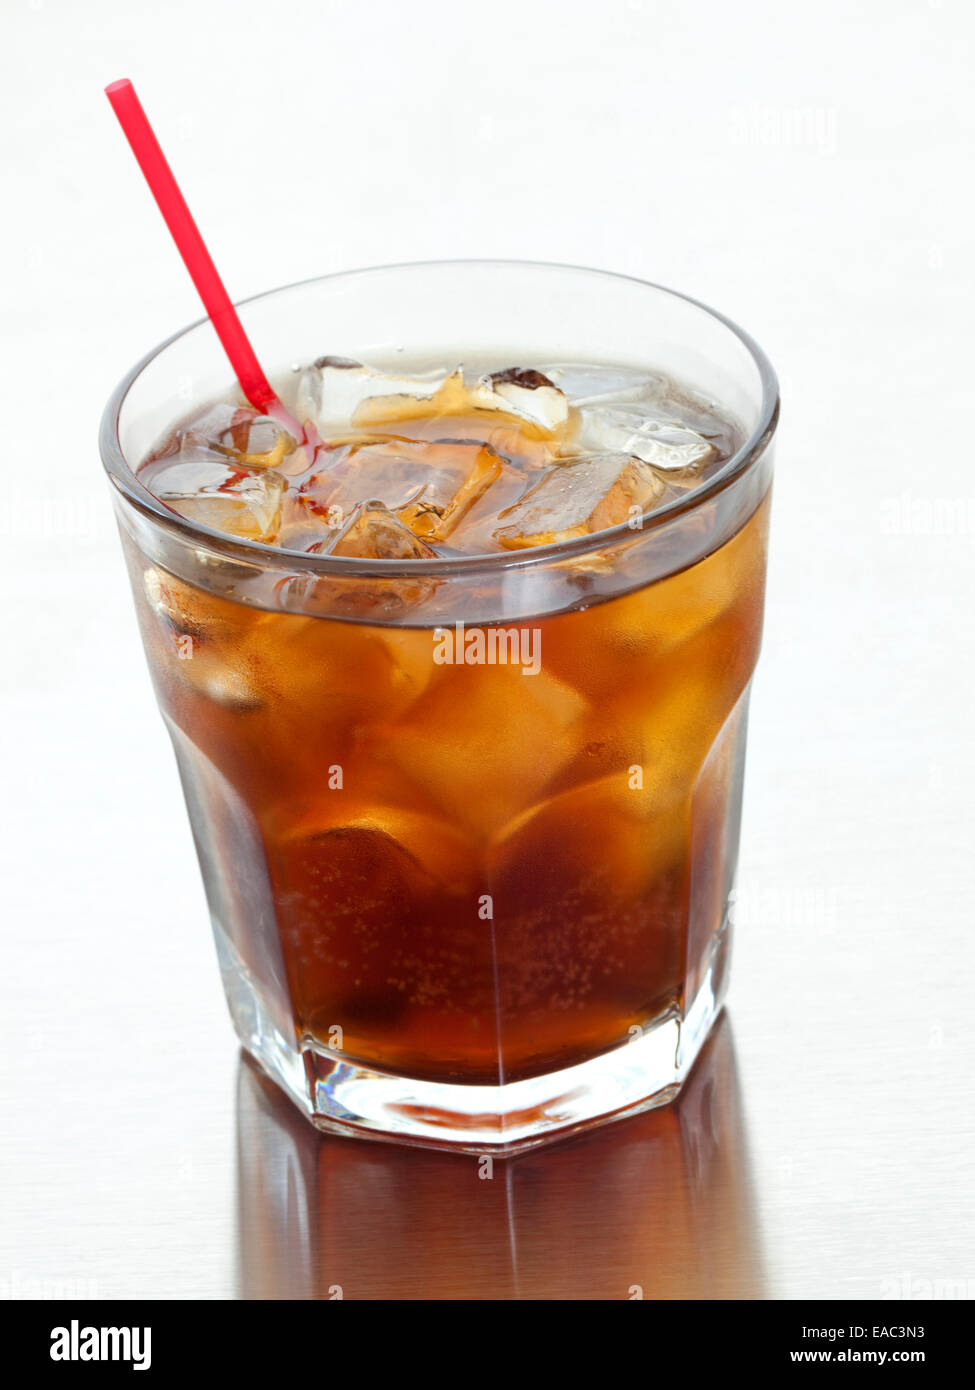 Cola Drink in glass with ice and straw - Stock Image